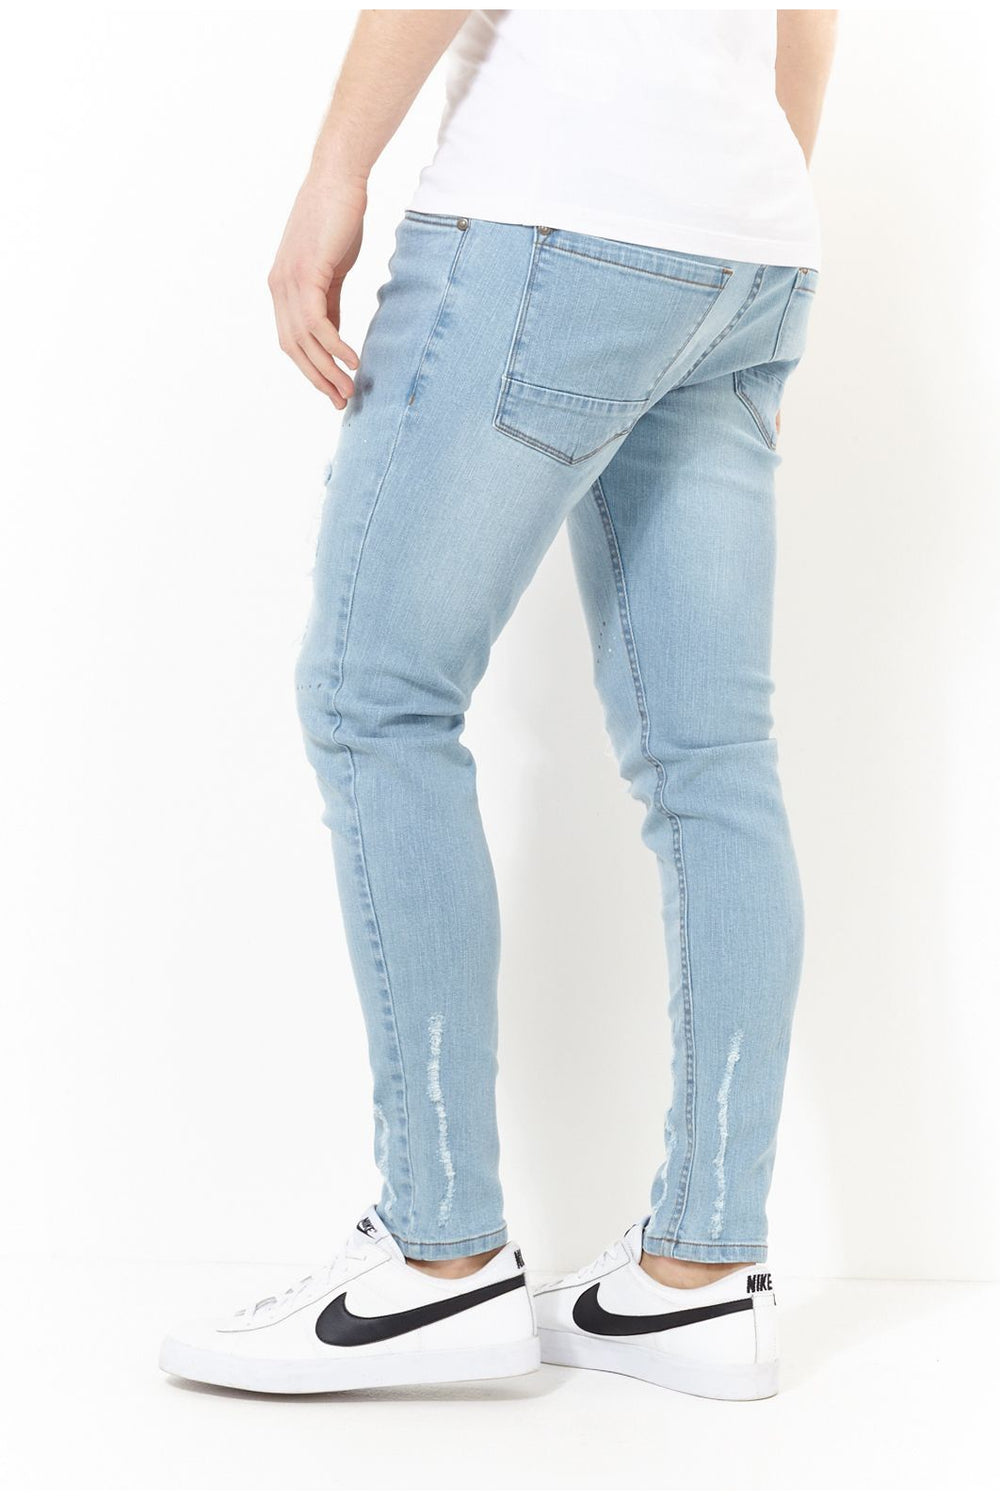 Jeans - Skinny Washed Destroyed Jeans Blue